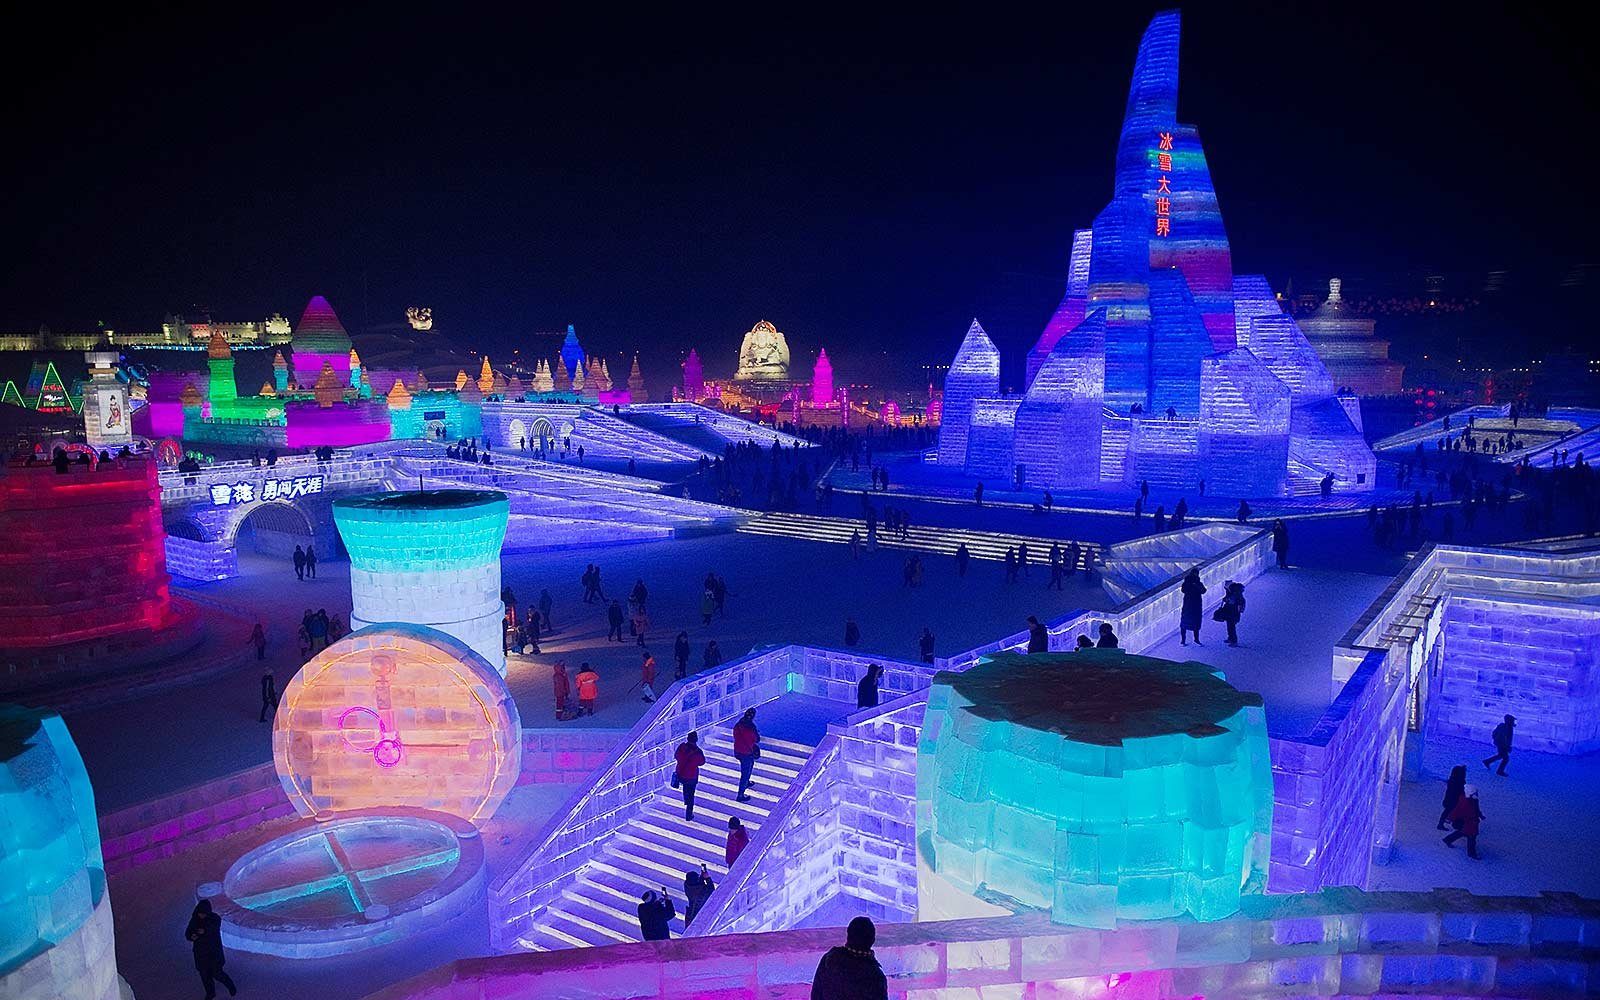 This Ice Festival In China Is A Dazzling Multi-colored